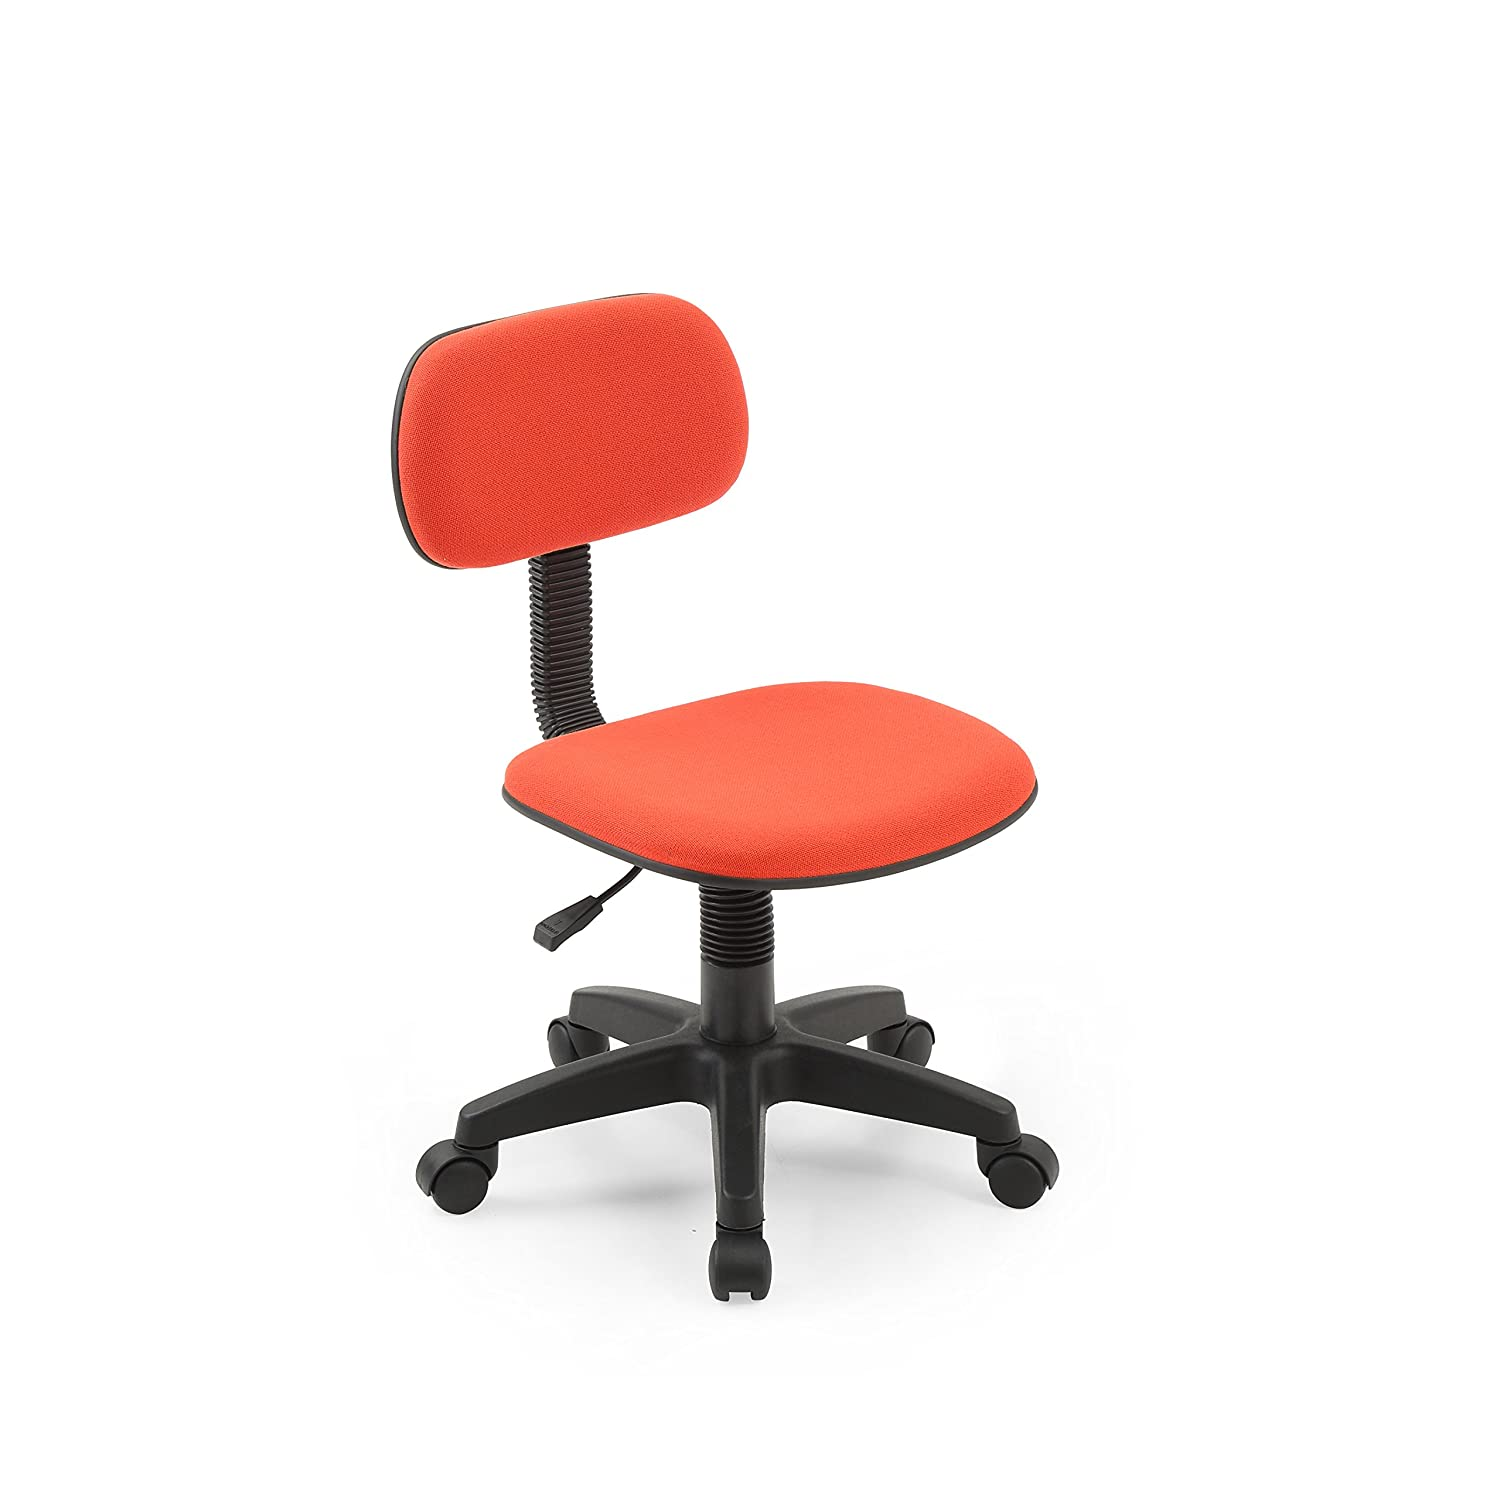 Hodedah Armless, Low-Back, Adjustable Height, Swiveling Task Chair with Padded Back and Seat in Red